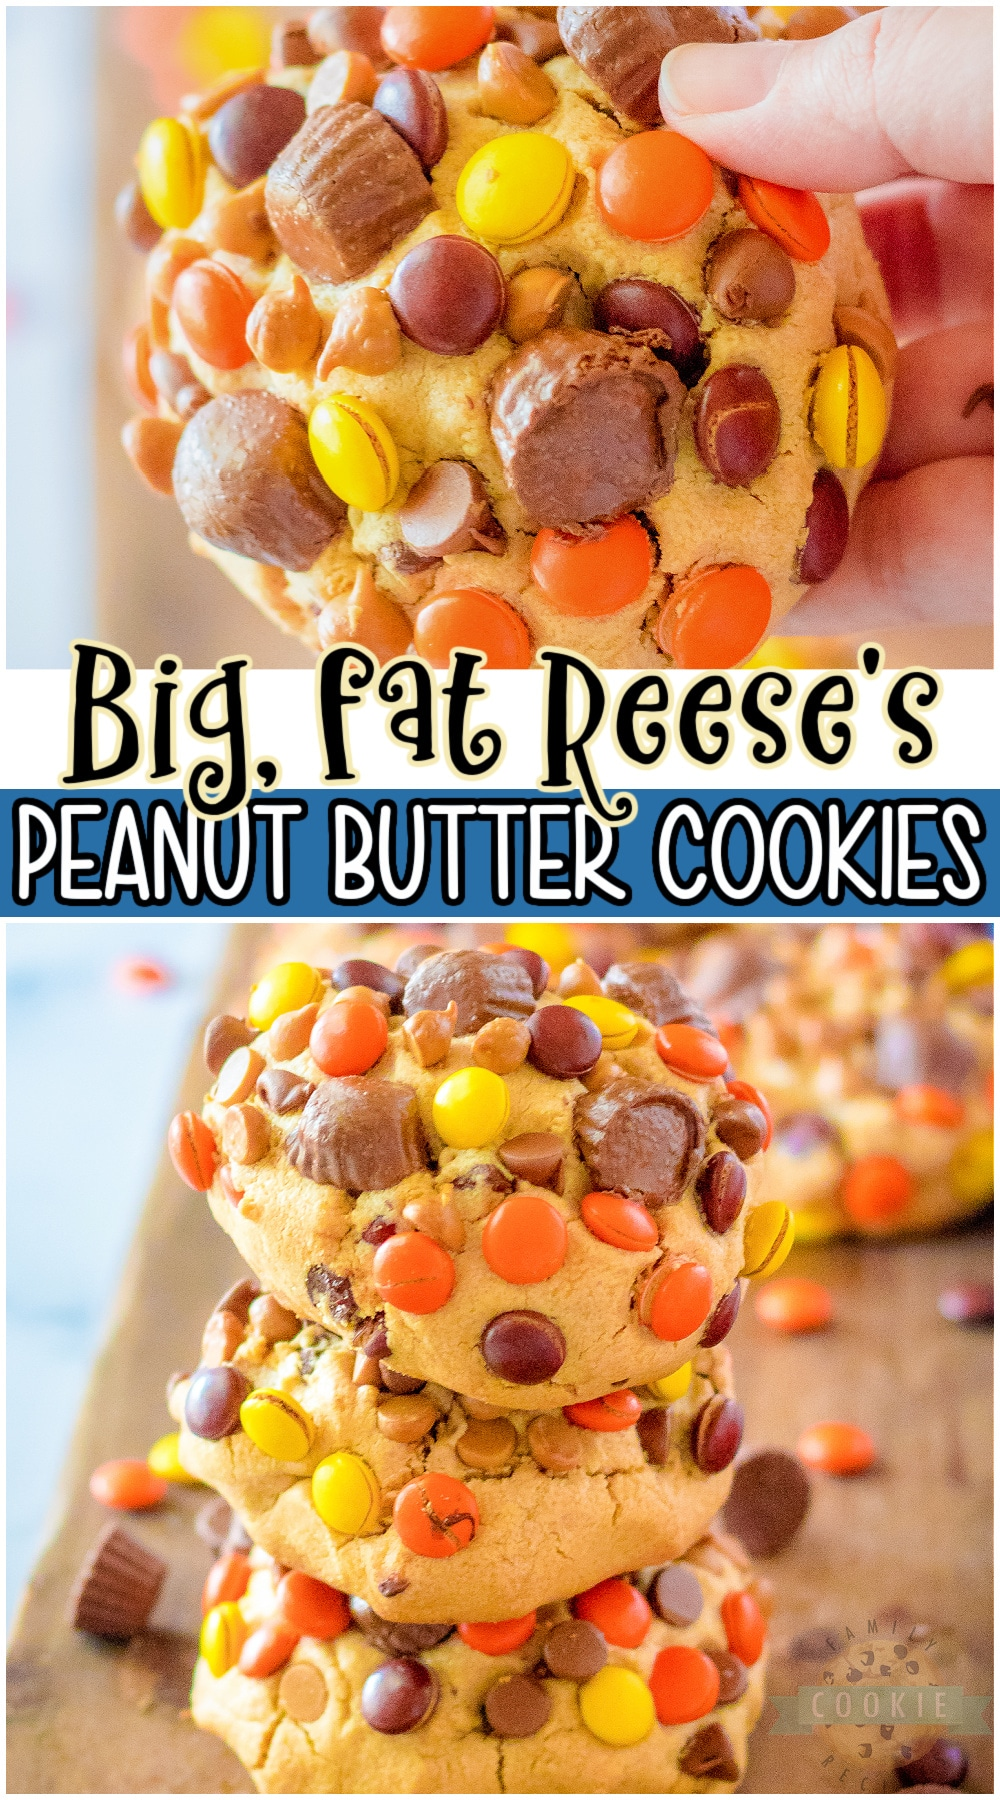 Reese's Peanut Butter cookies loaded with Reese's Pieces, peanut butter & chocolate chips, and Reese's Cups!  Big, fat cookies packed with great peanut butter chocolate flavor that everyone loves! #cookies #bigfat #peanutbutter #reeses #easyrecipe from FAMILY COOKIE RECIPES via @buttergirls